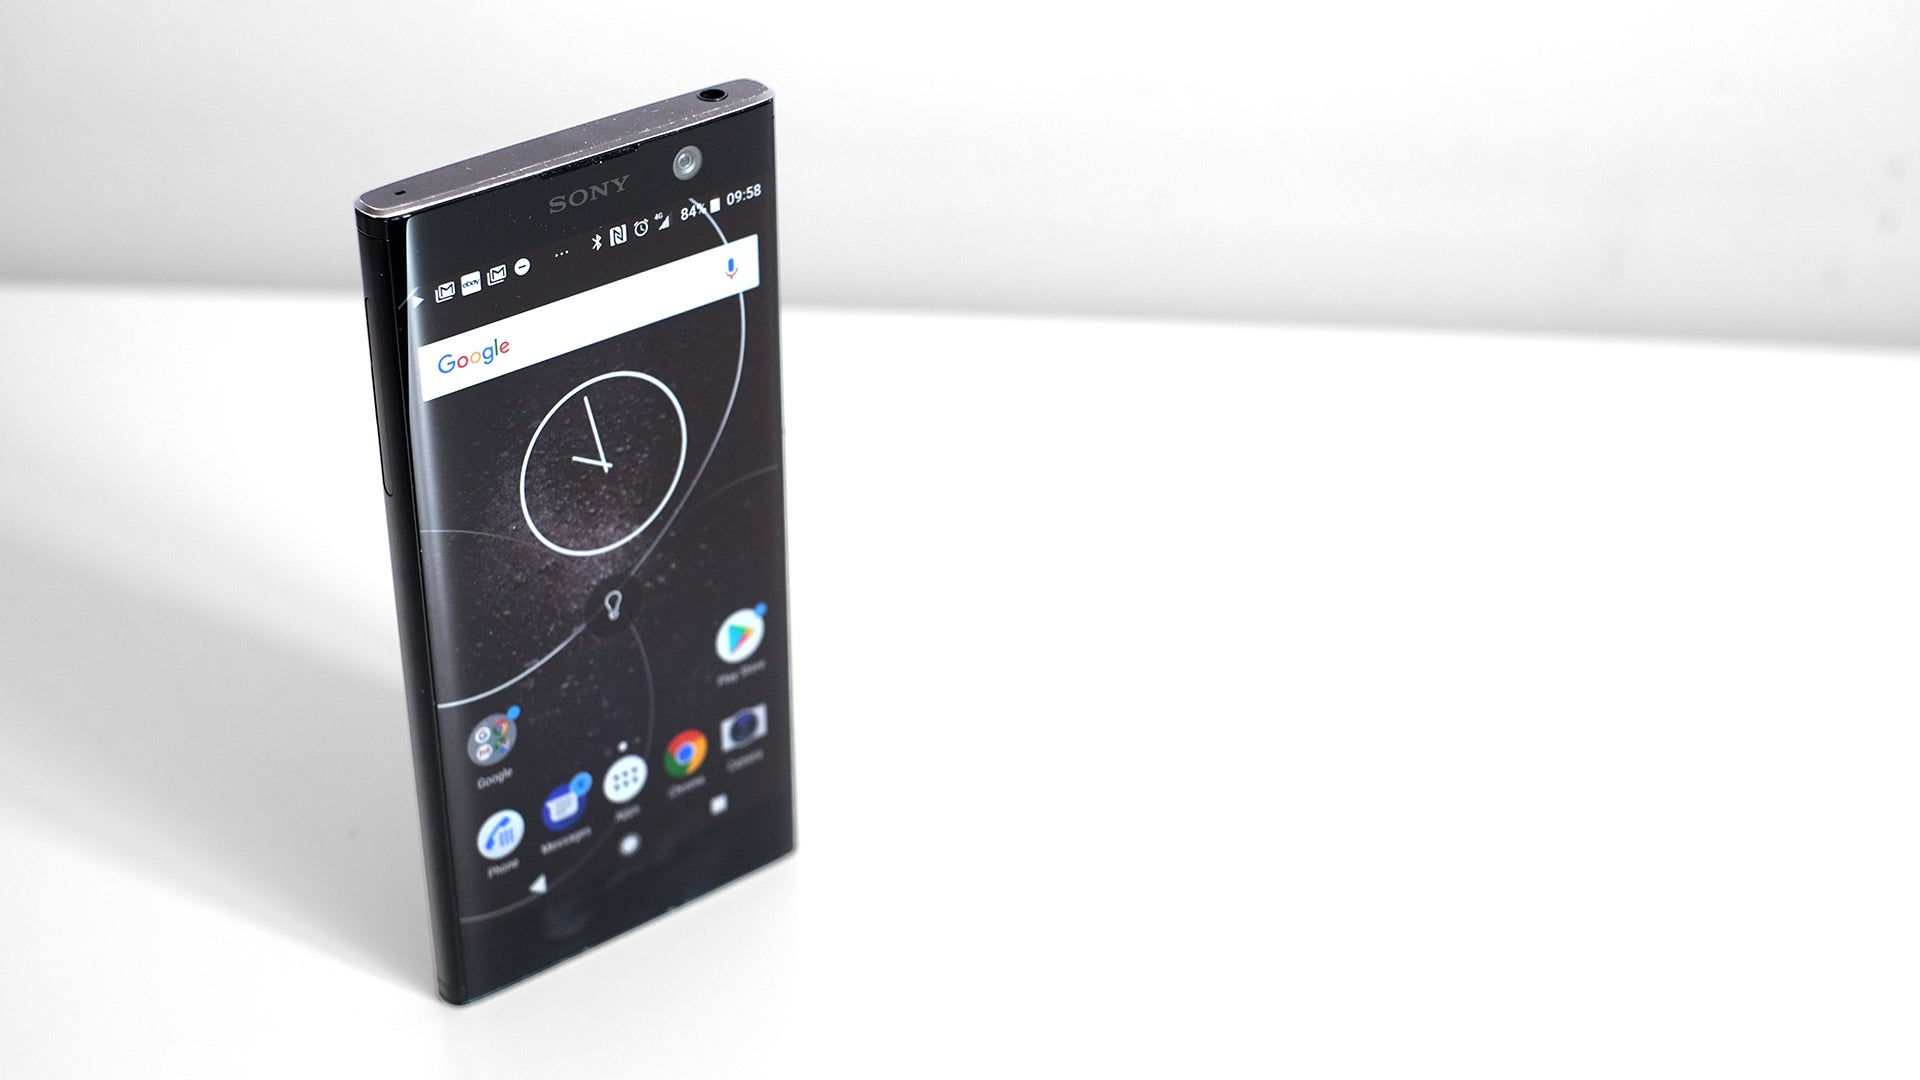 sony z ultra google play edition цена